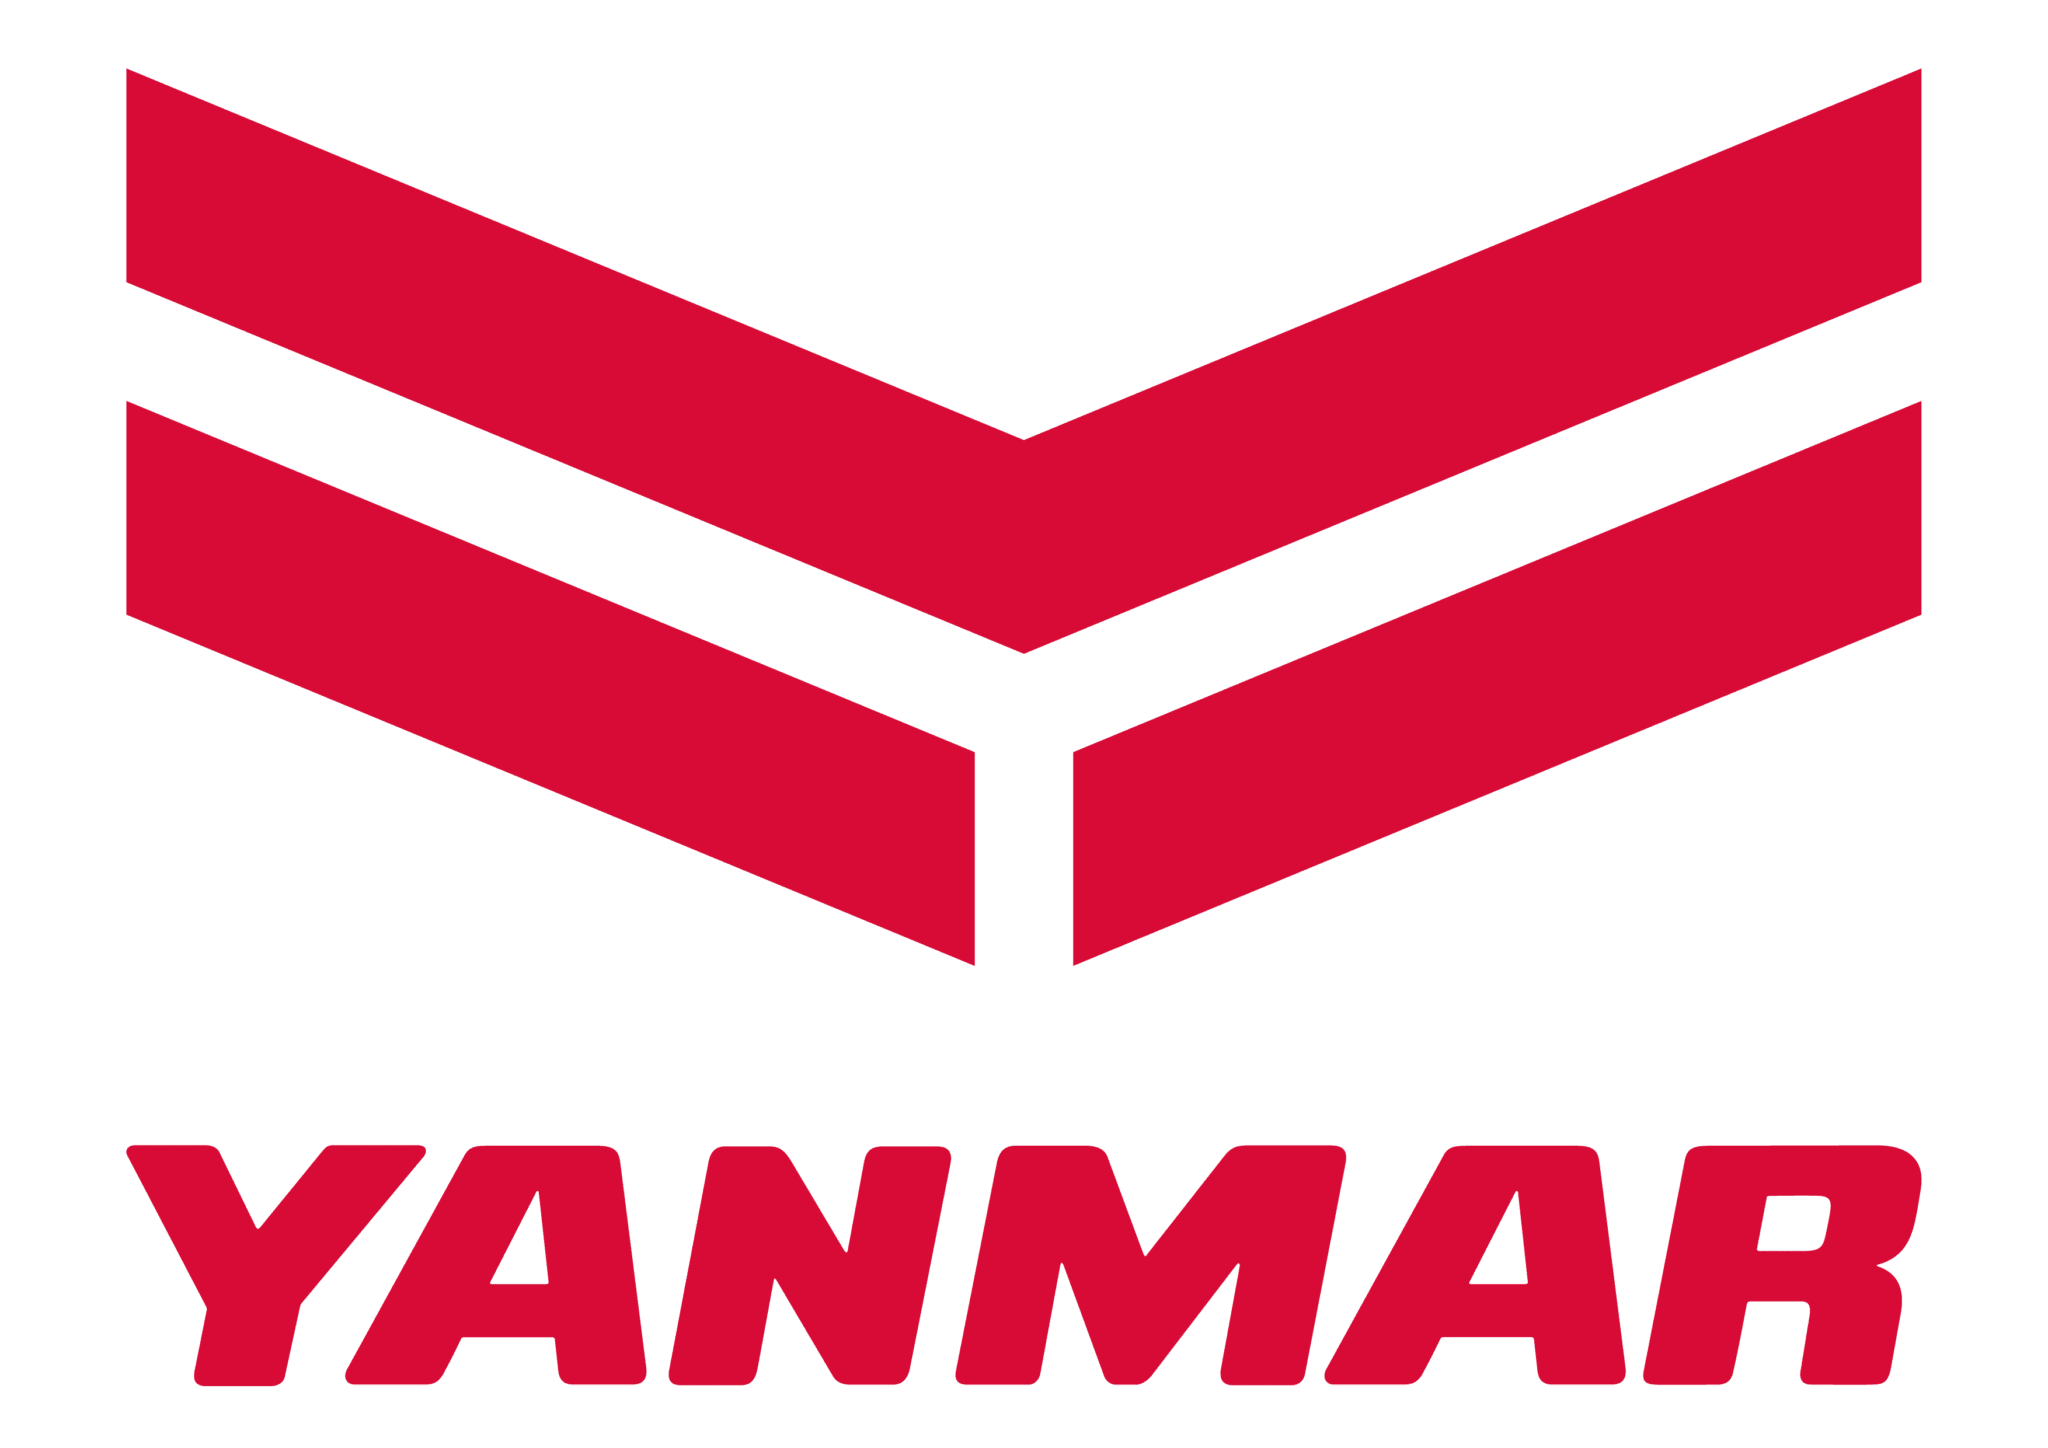 Yanmar Ai Flying Y Yanmar Vertical 01